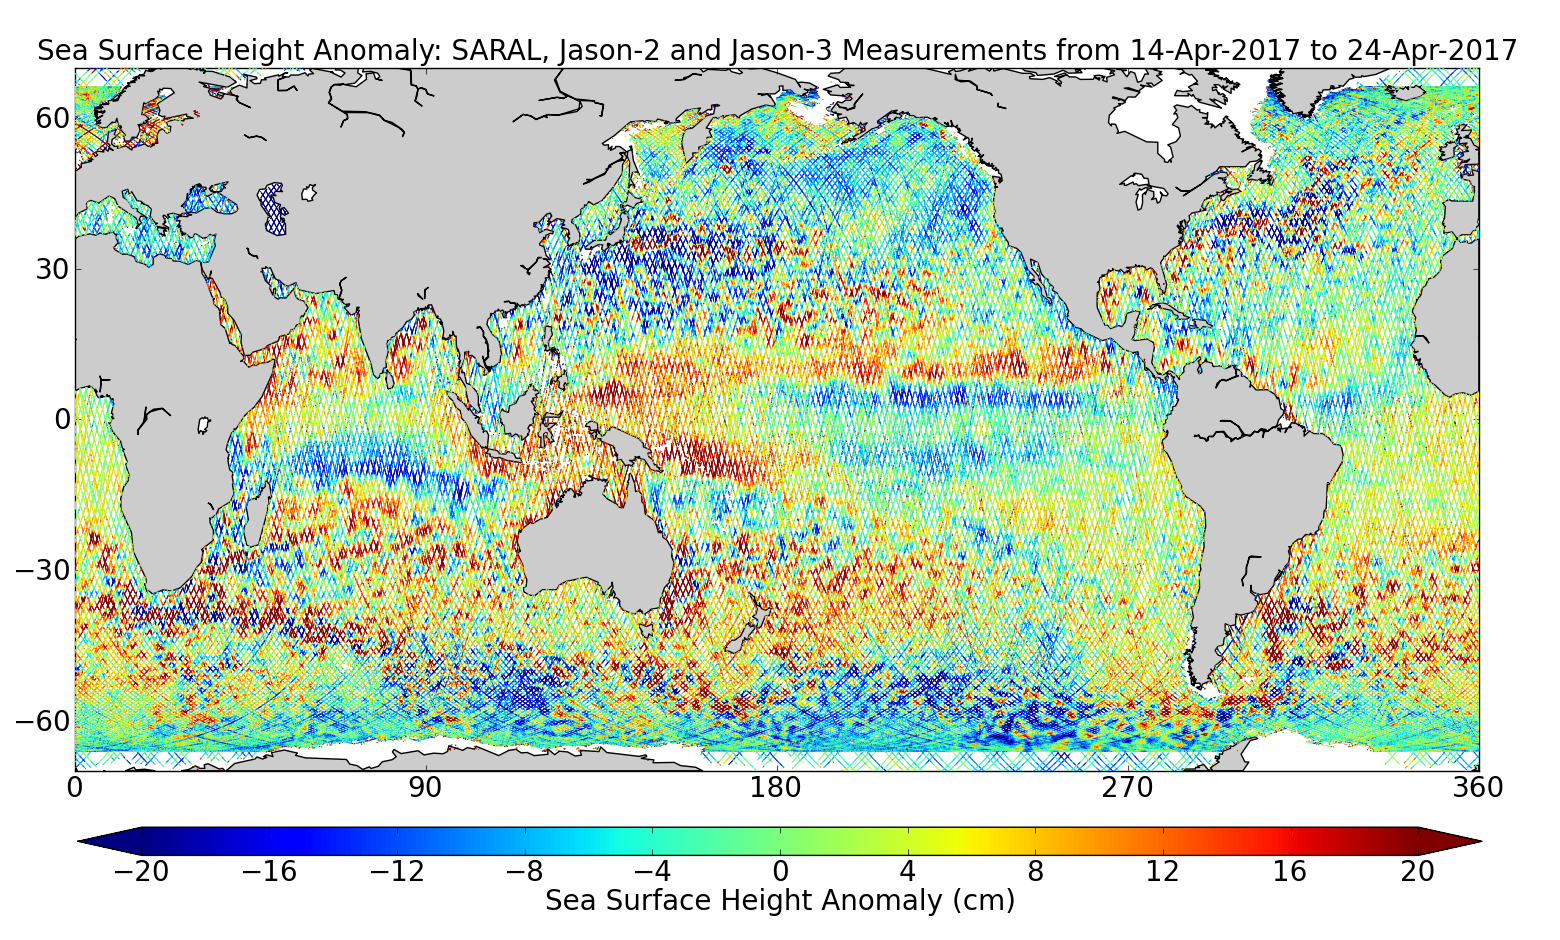 Sea Surface Height Anomaly: SARAL, Jason-2 and Jason-3 Measurements from 14-Apr-2017 to 24-Apr-2017